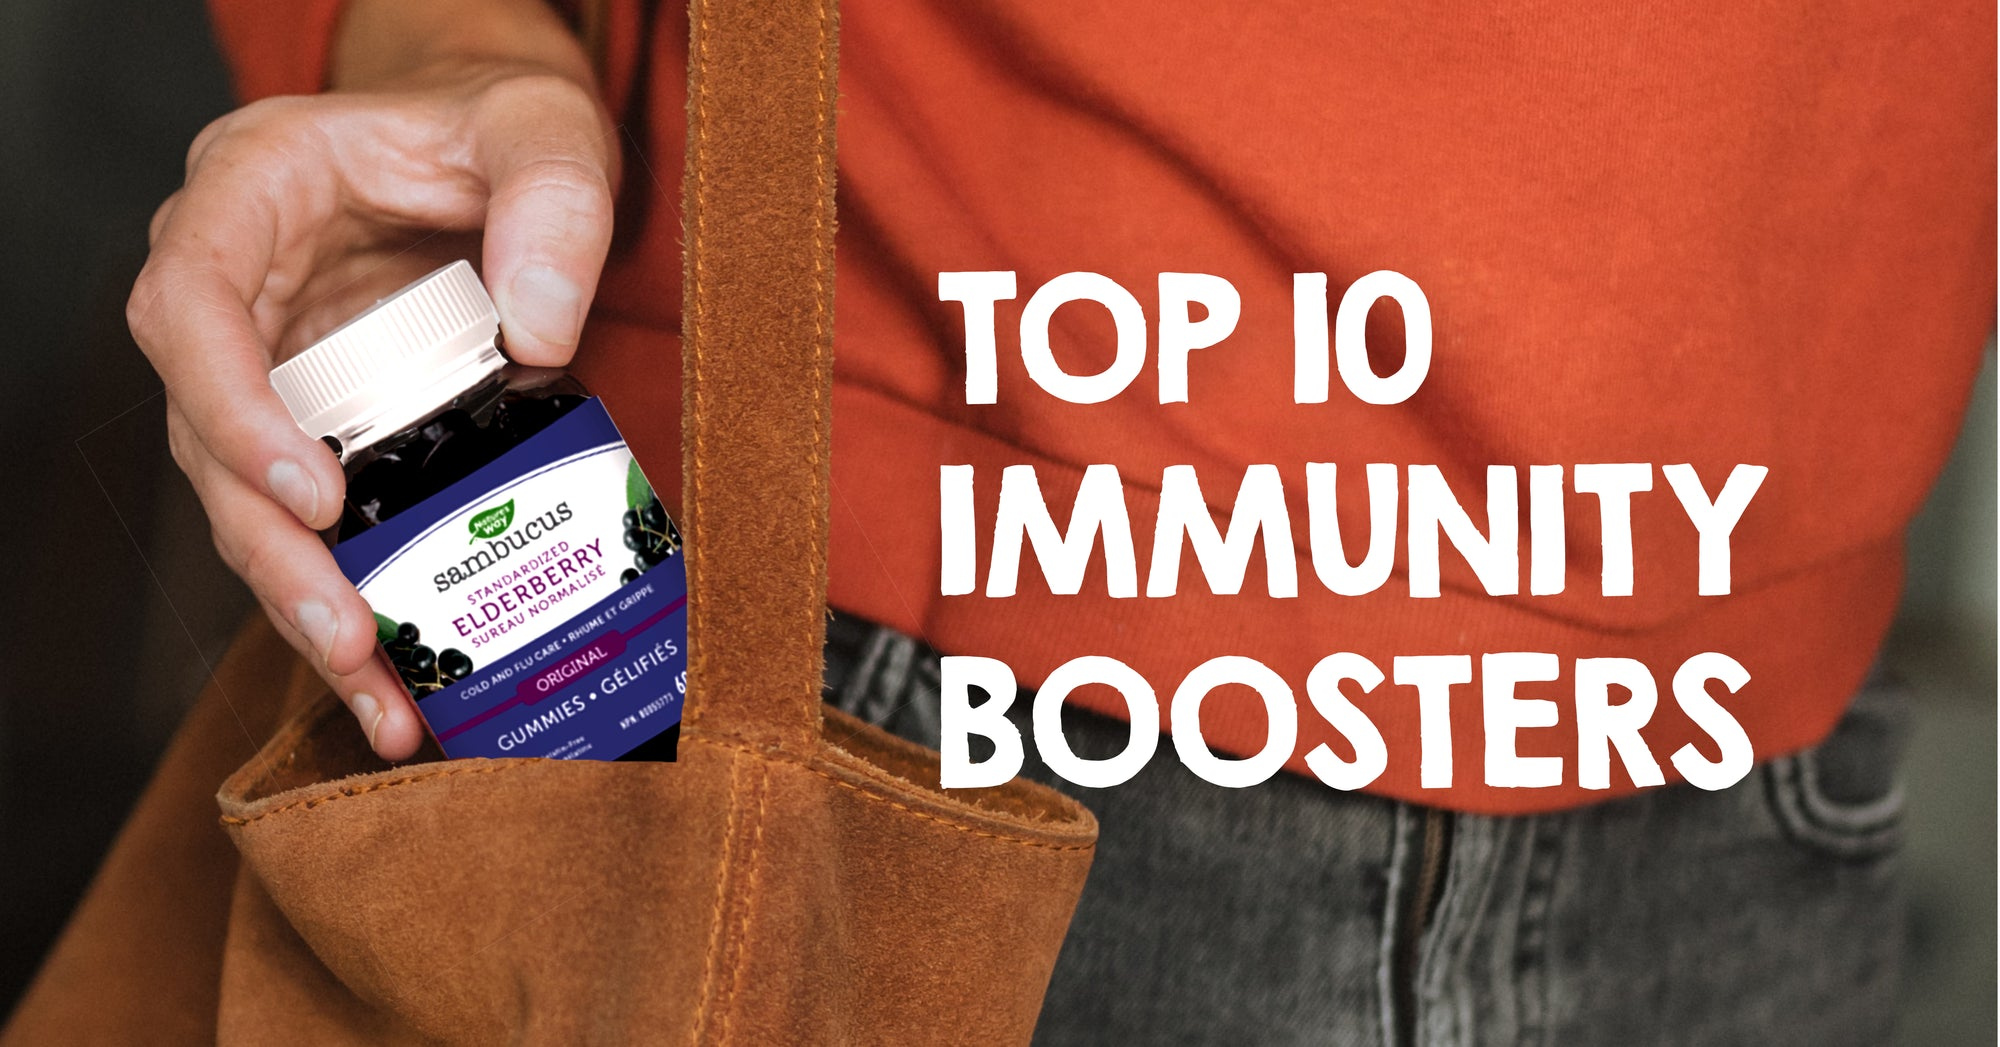 Top 10 Immunity Boosters